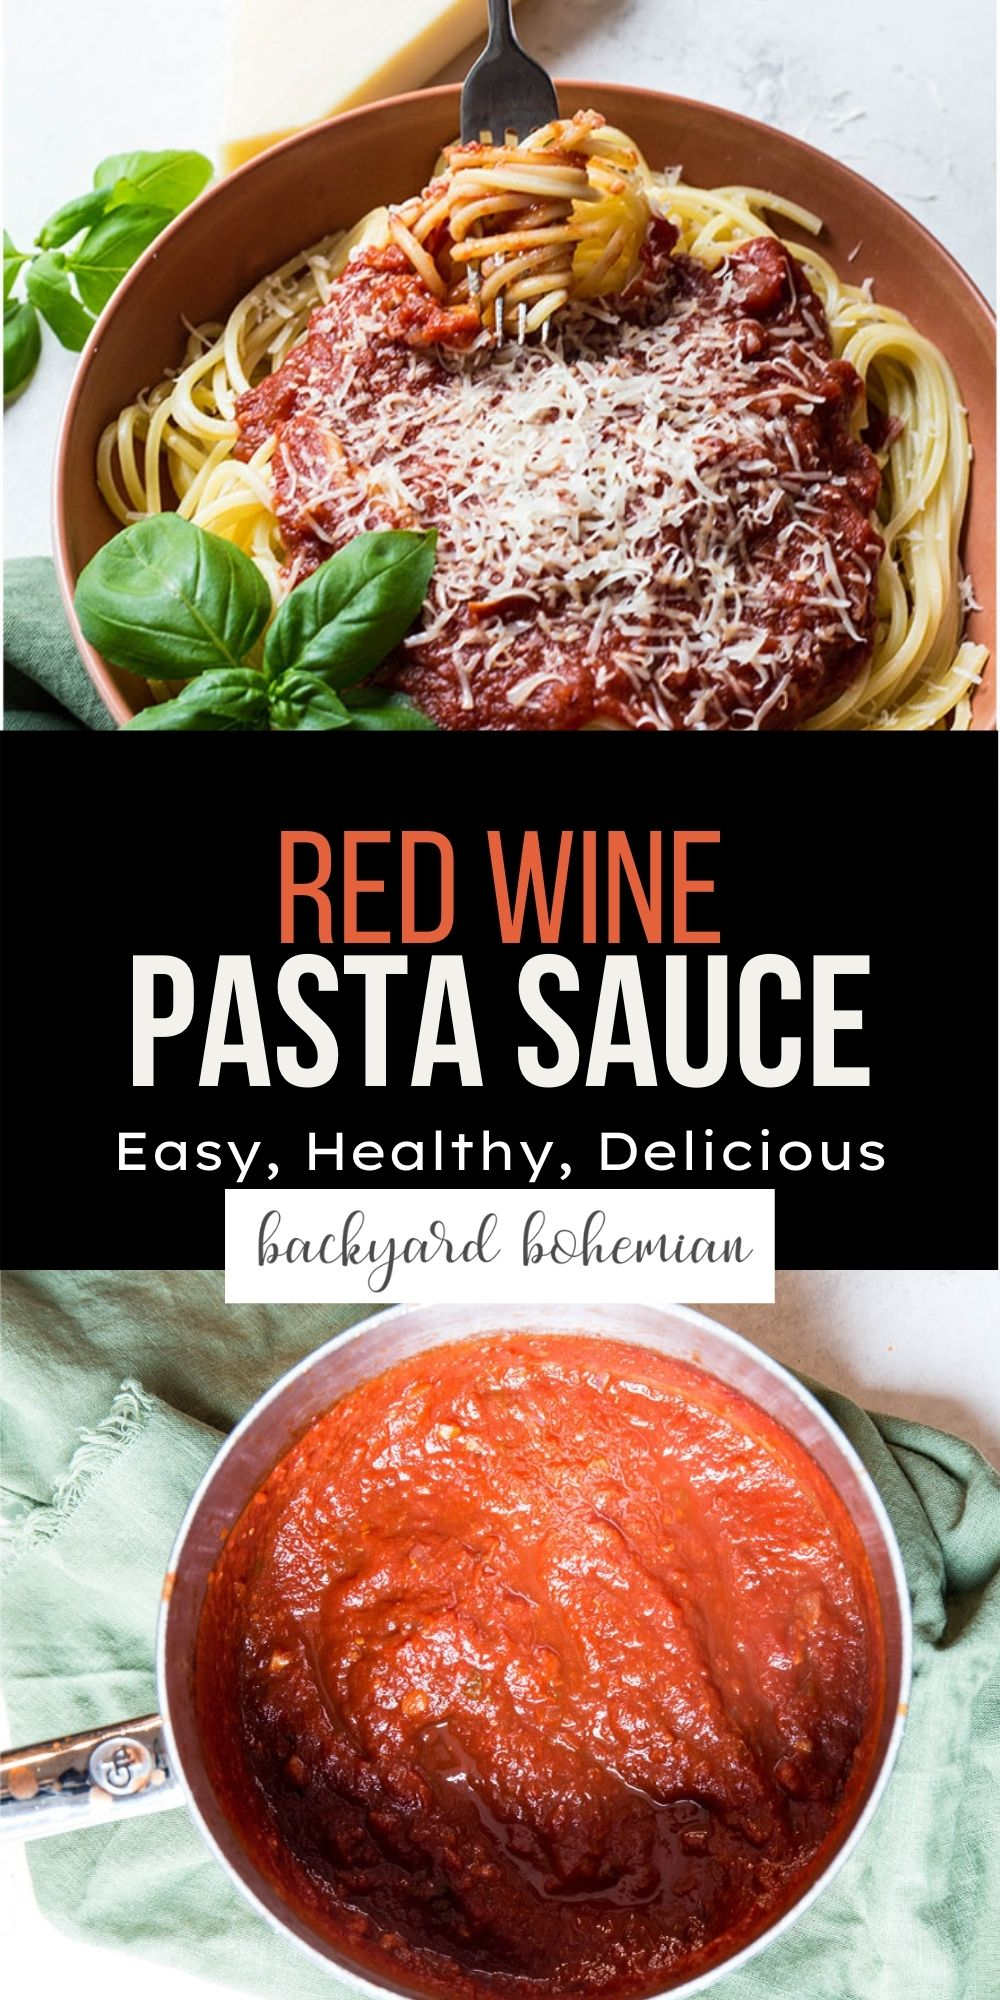 Red wine pasta sauce is ready 30 minutes! Dry red wine, crushed tomatoes, and fresh herbs make this pasta sauce healthy and delicious! via @foodhussy